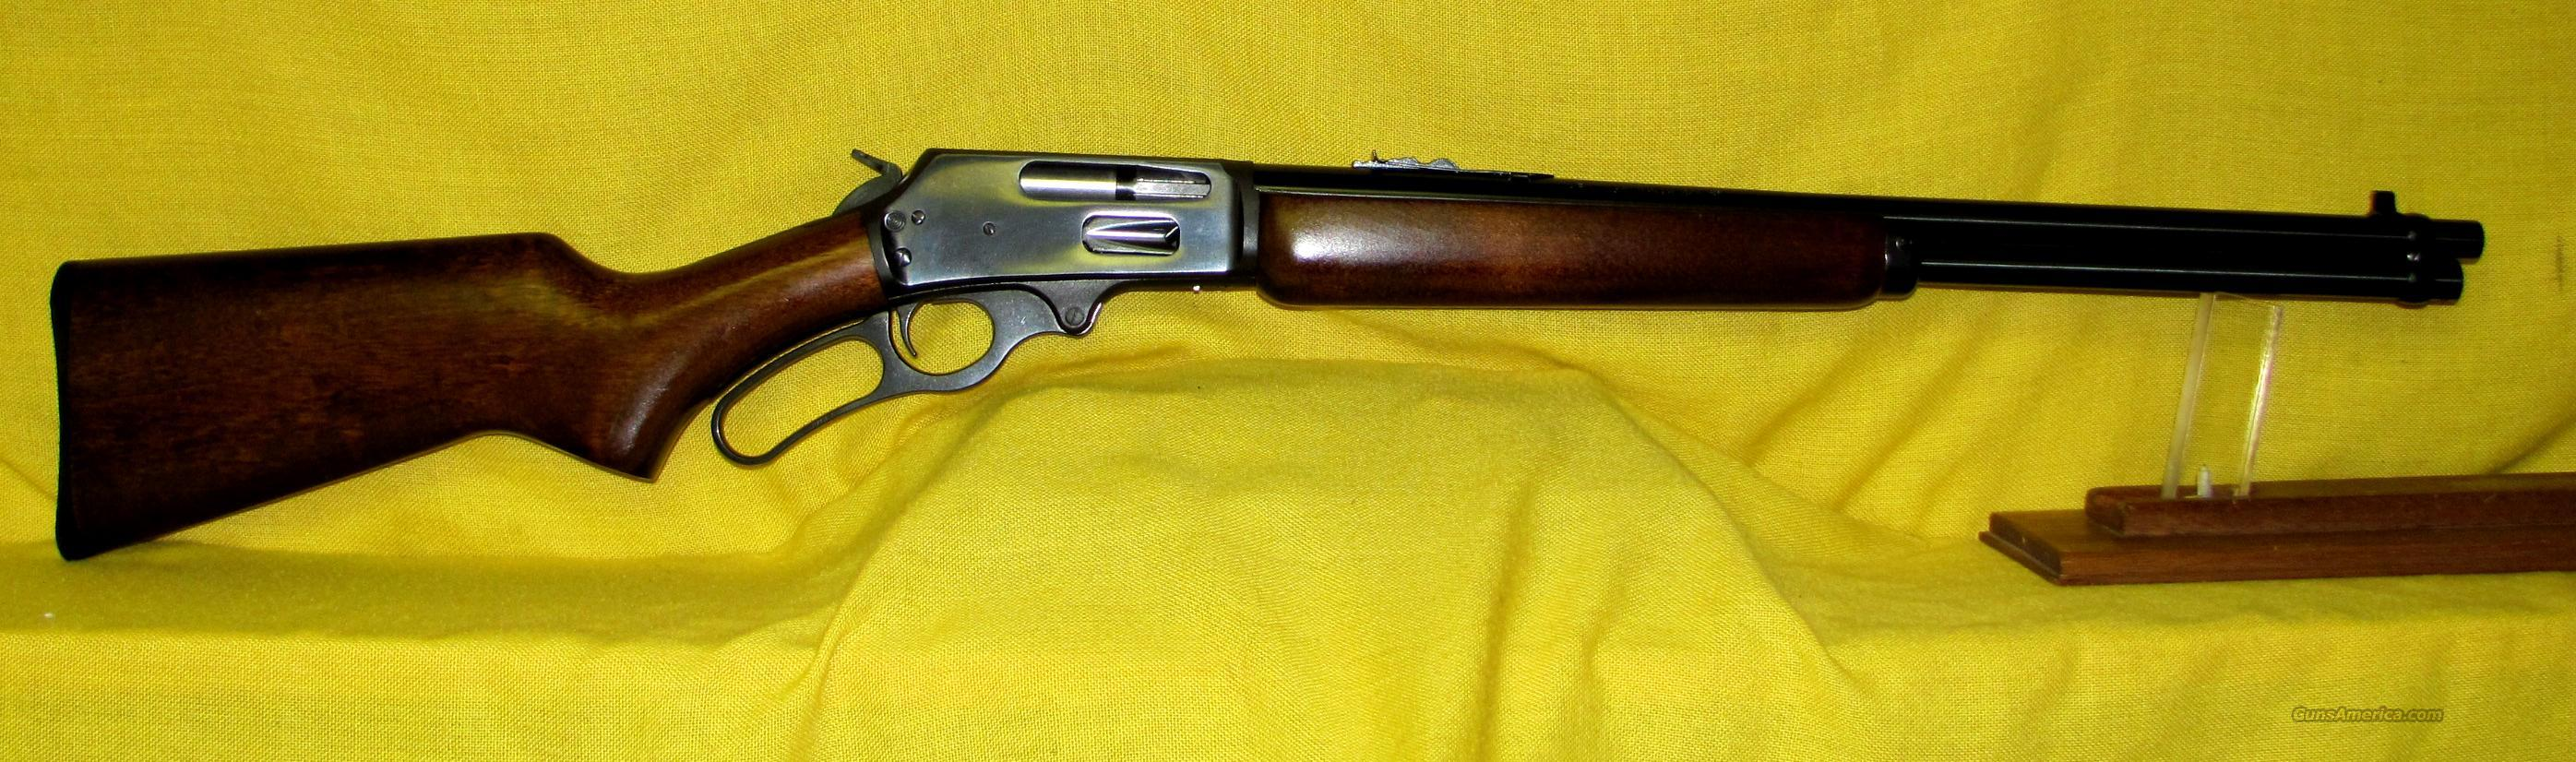 "MARLIN 30AS .30/30 20"" BARREL  Guns > Rifles > Marlin Rifles > Modern > Lever Action"